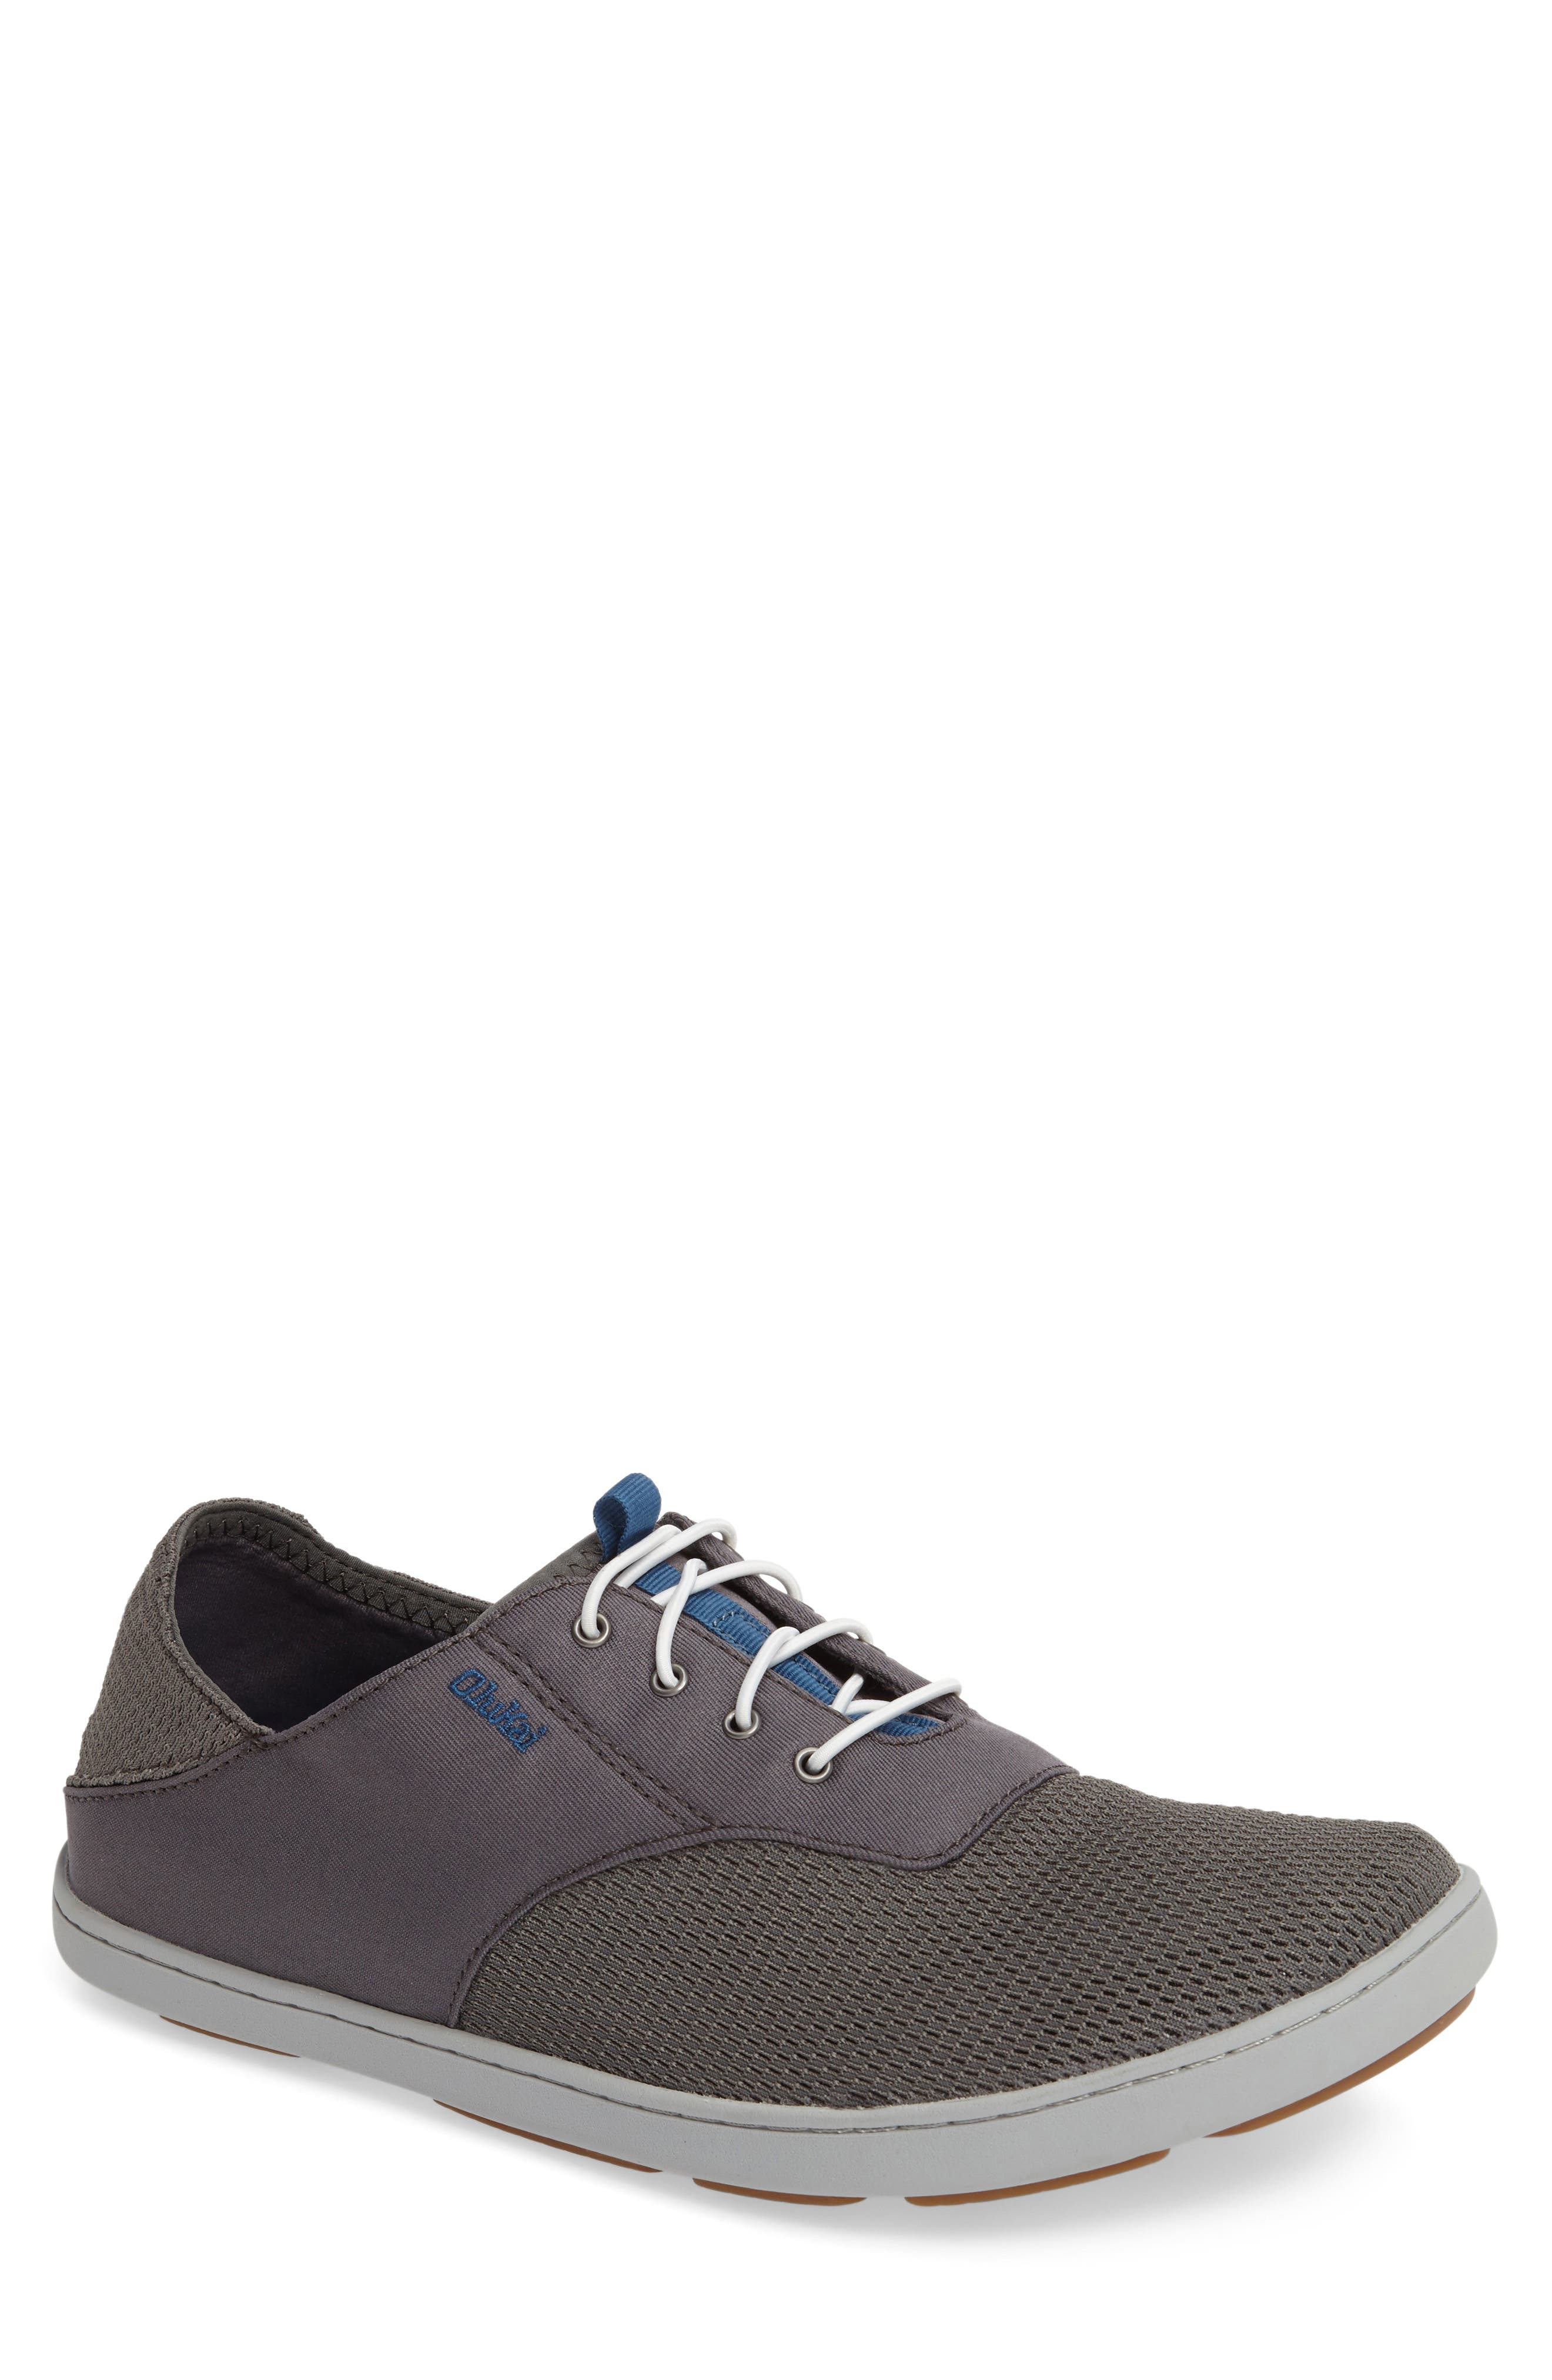 Alternate Image 1 Selected - OluKai 'Nohea Moku' Sneaker (Men)